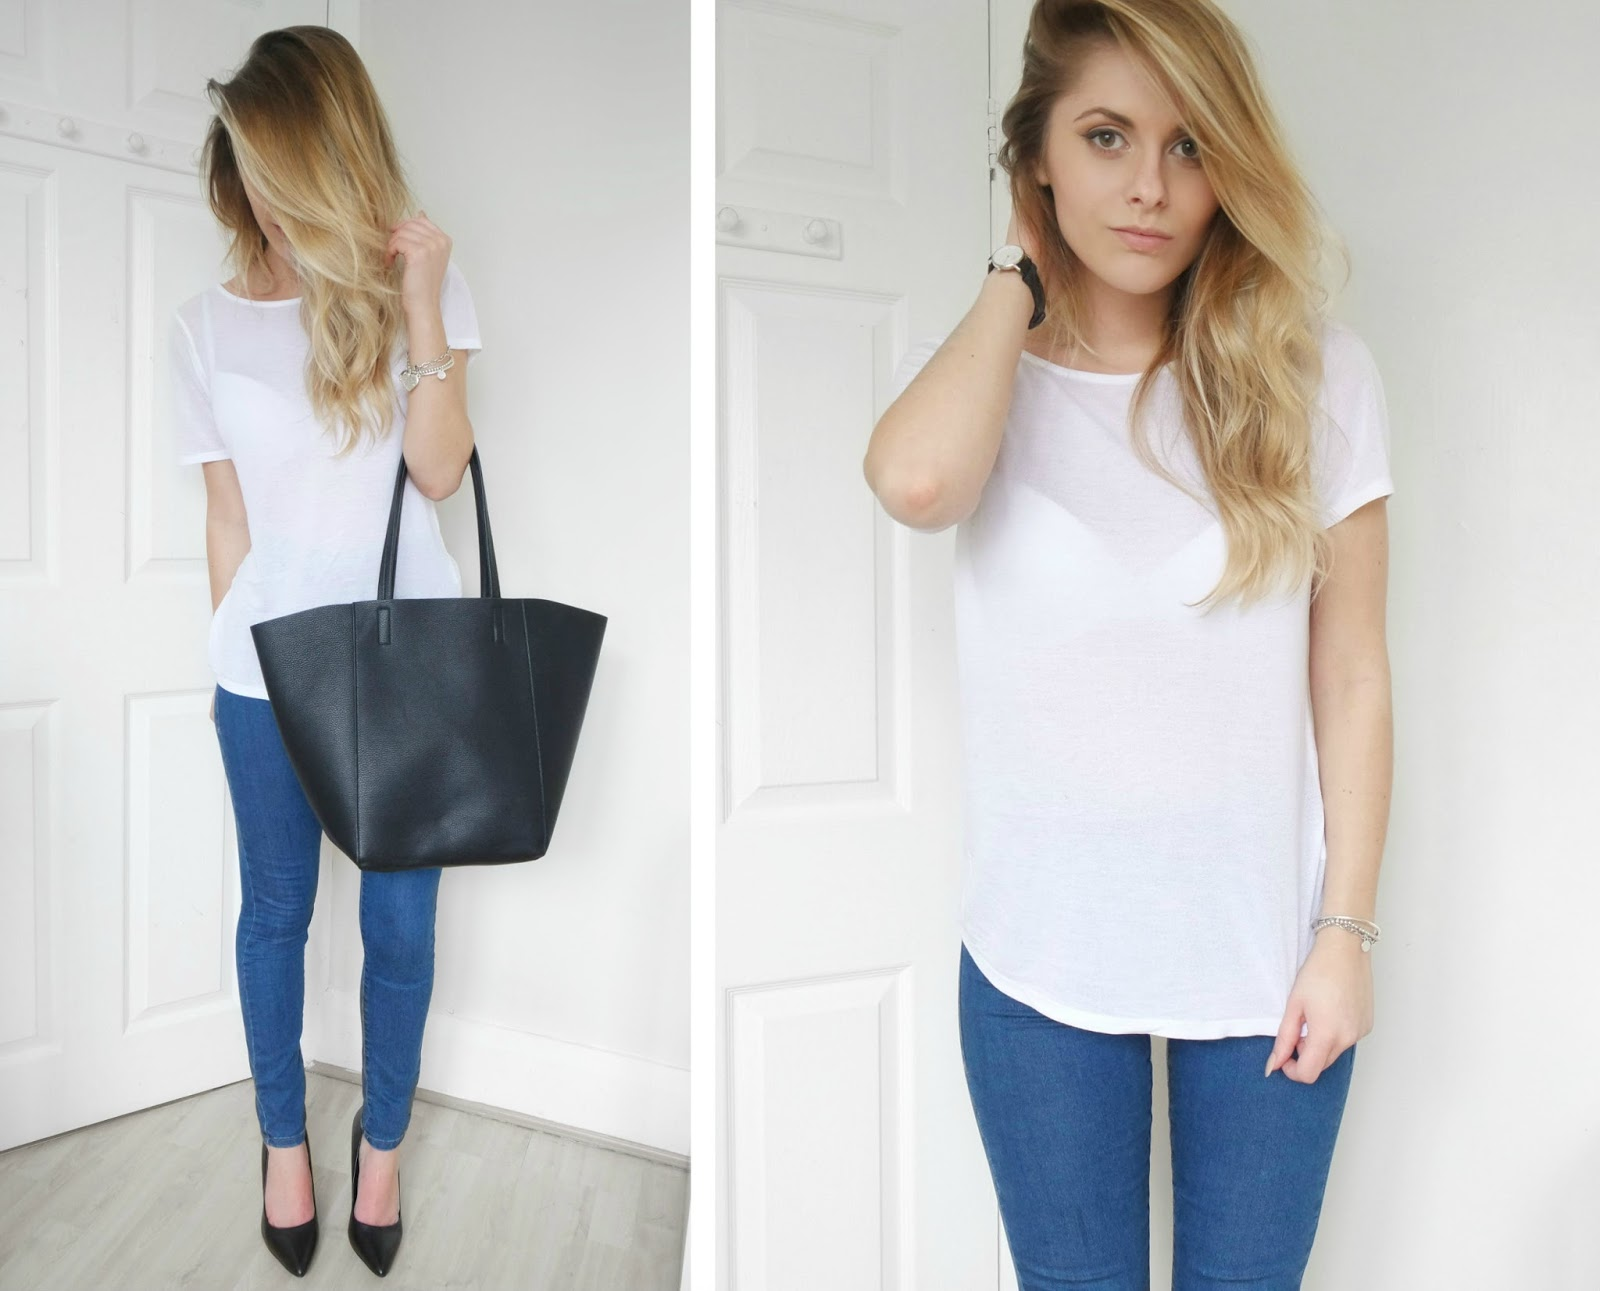 BLUE JEANS, WHITE SHIRT | Fashion Influx